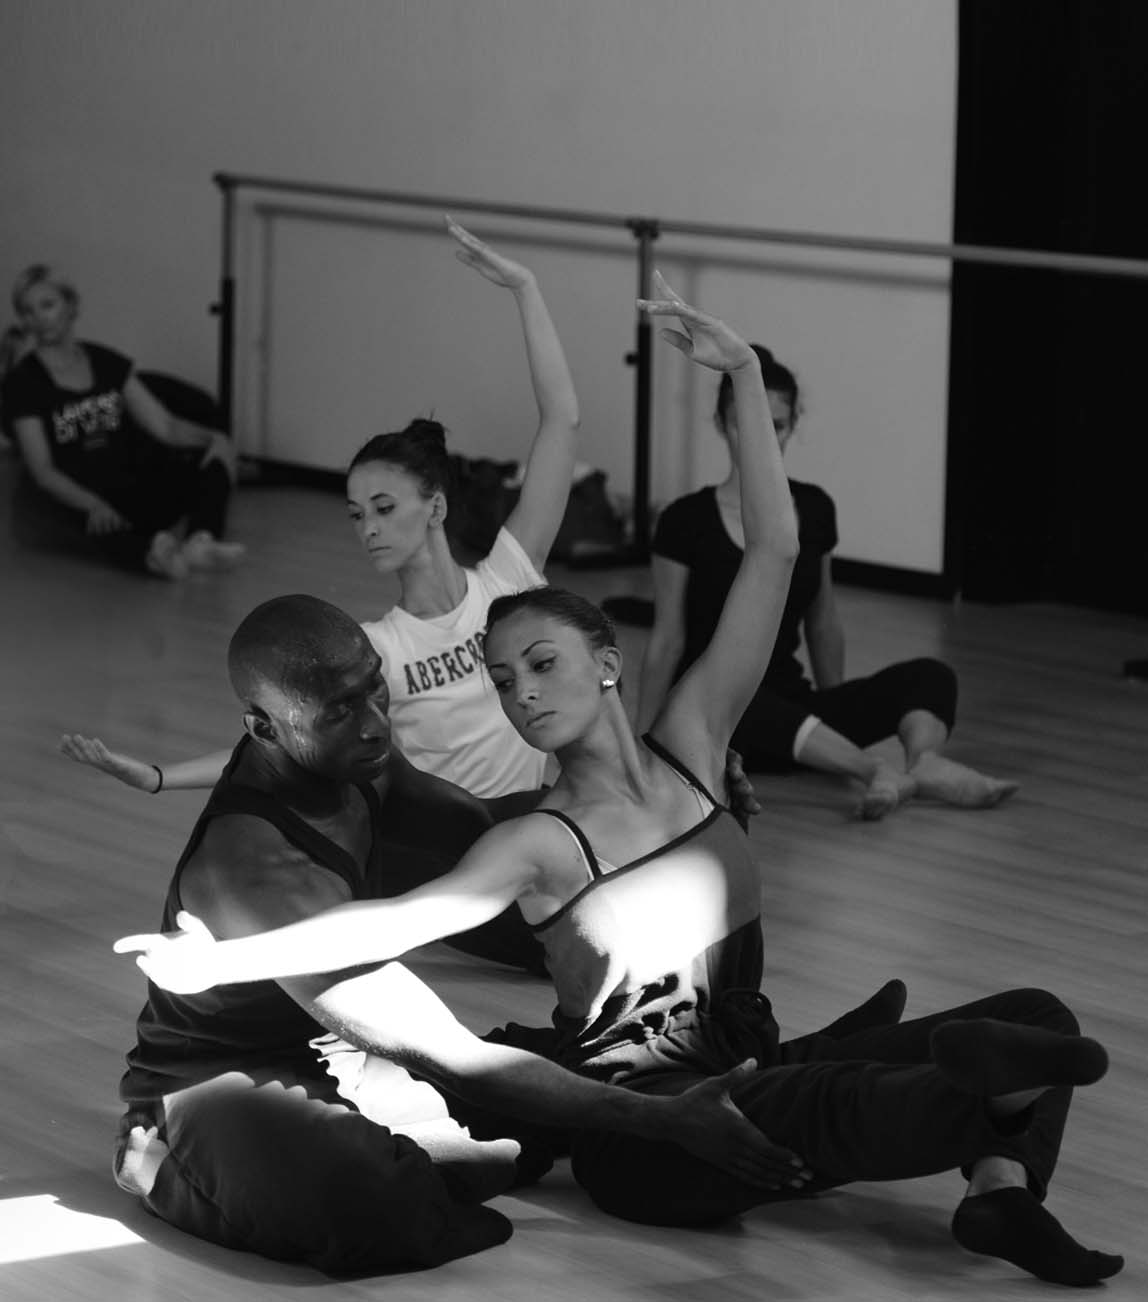 Dance, Posture and Performance conference at ISTD Summer School in Sportilia